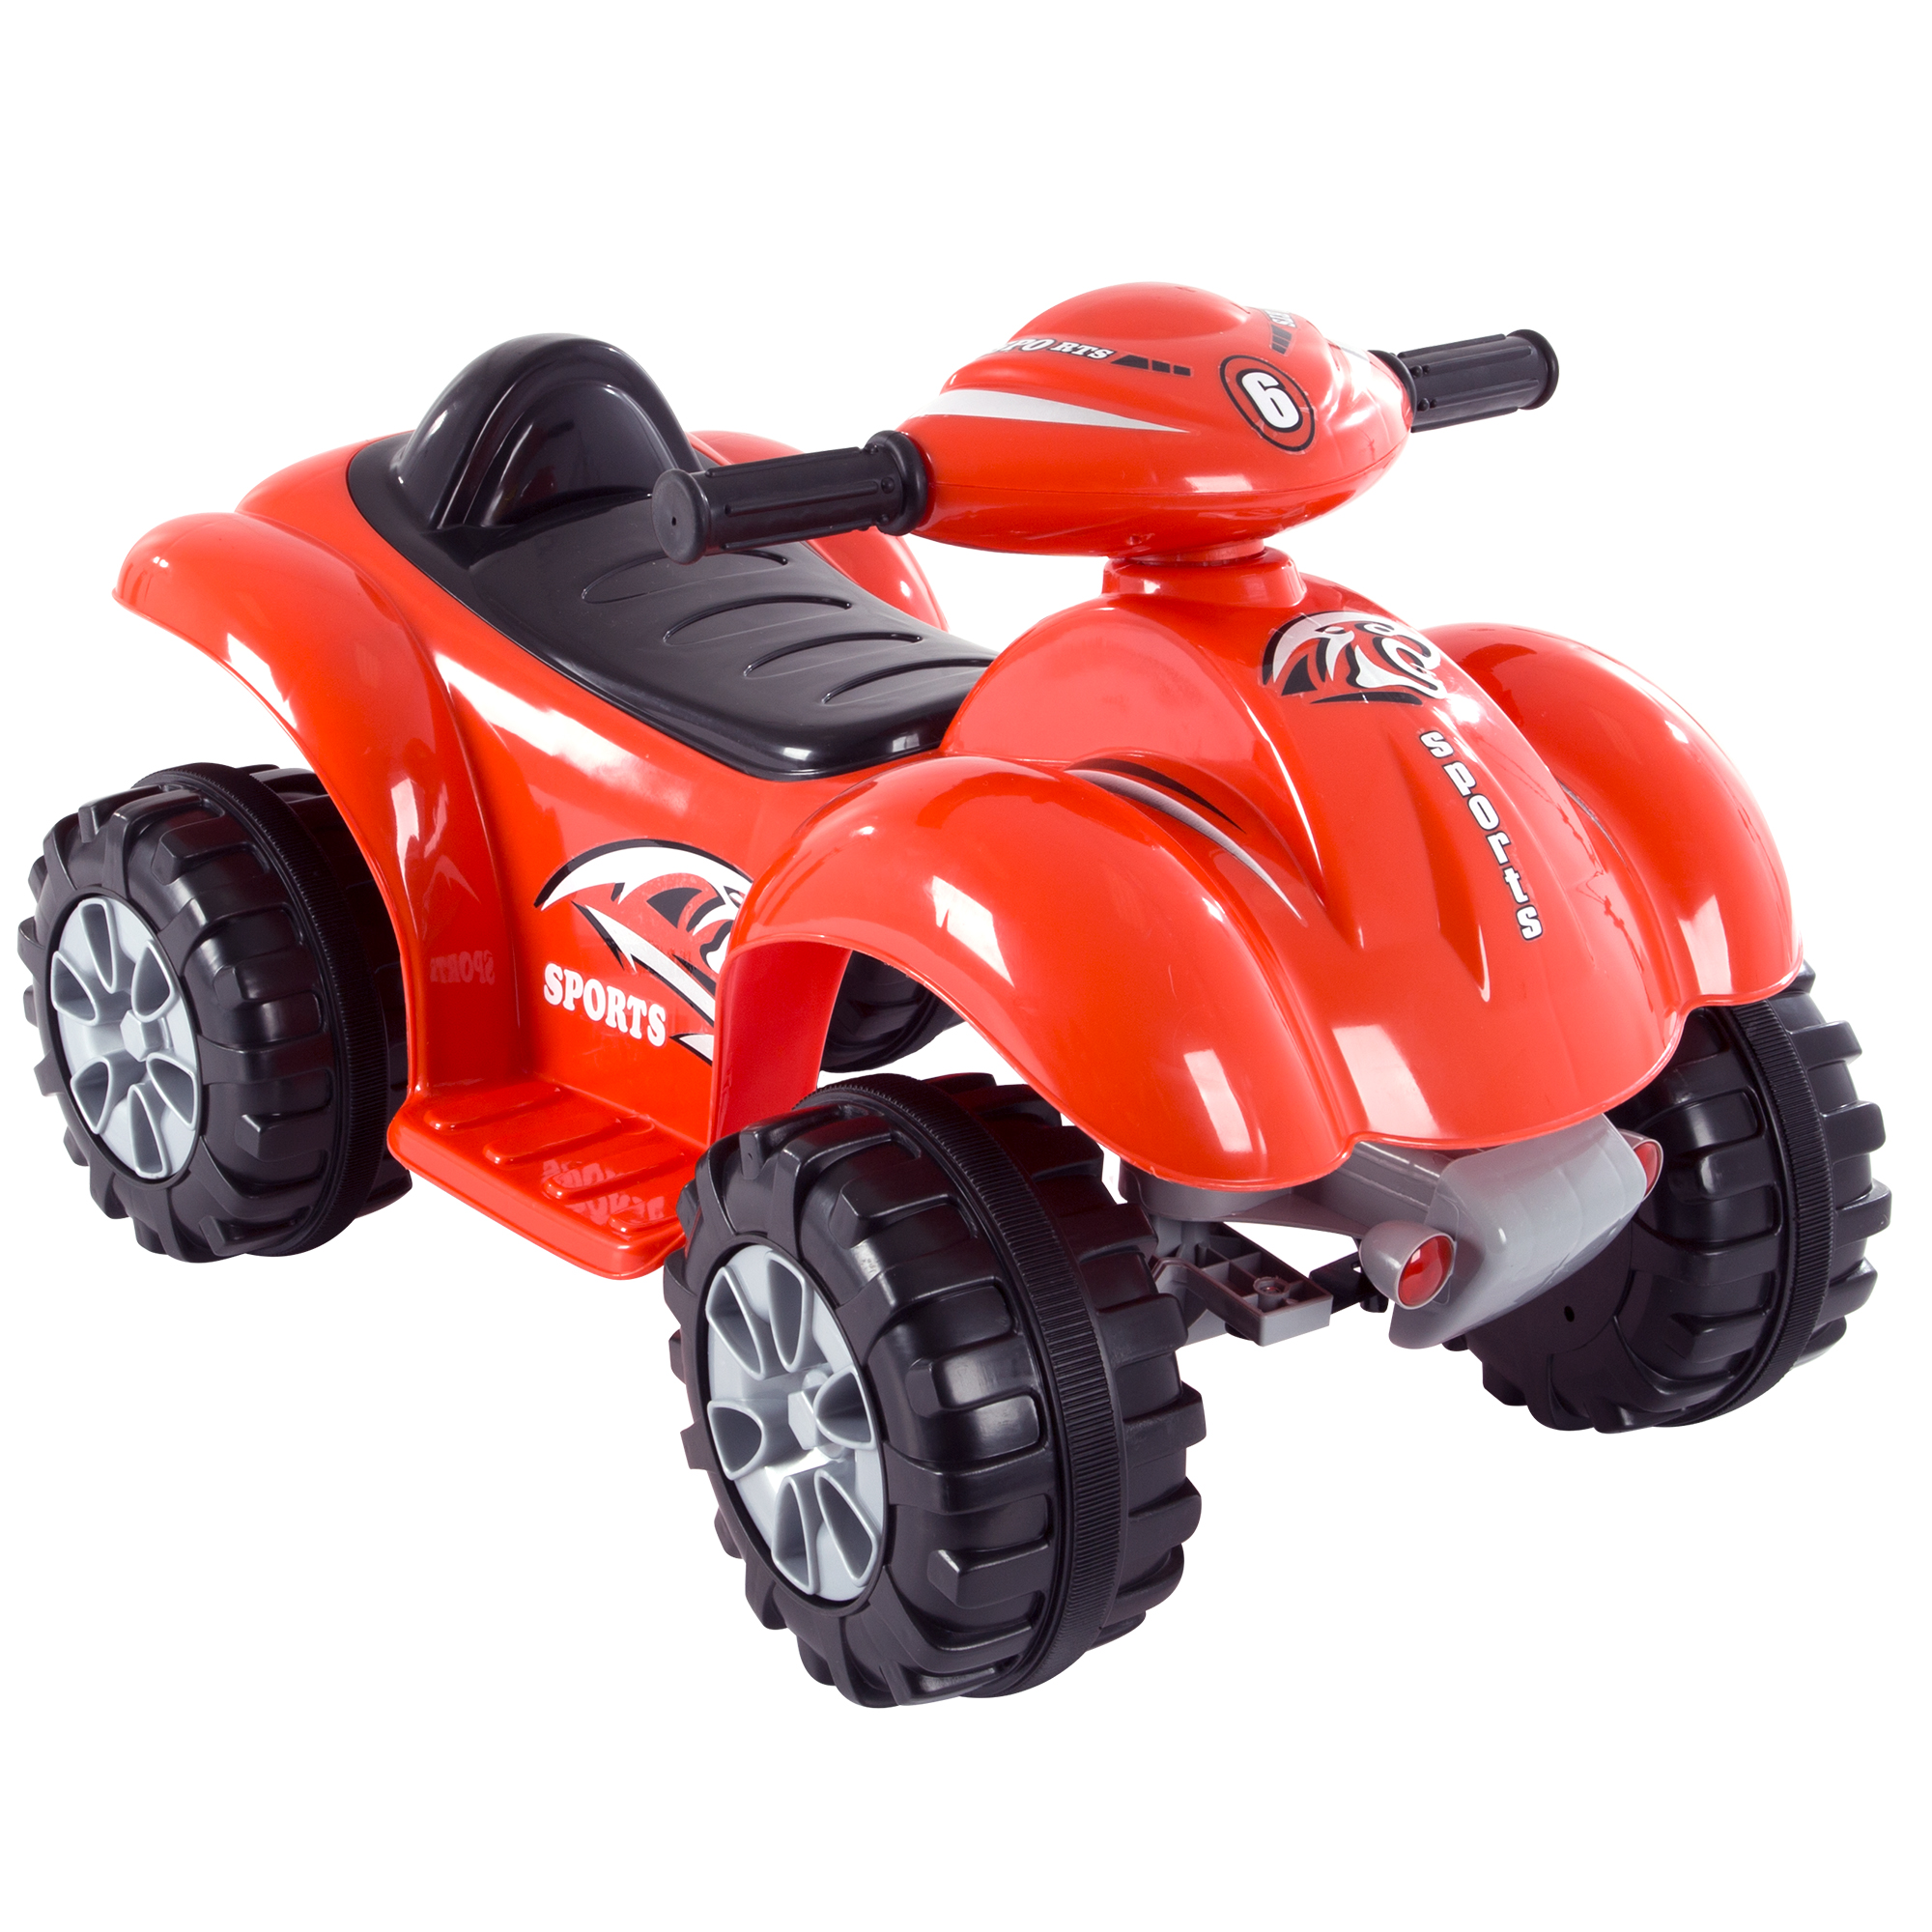 Ride On Toy Quad, Battery Powered Ride On ATV Dinosaur Four Wheeler With Sound Effects by Hey! Play! – Toys for Boys and Girls 2 - 4 Year Olds (Red)